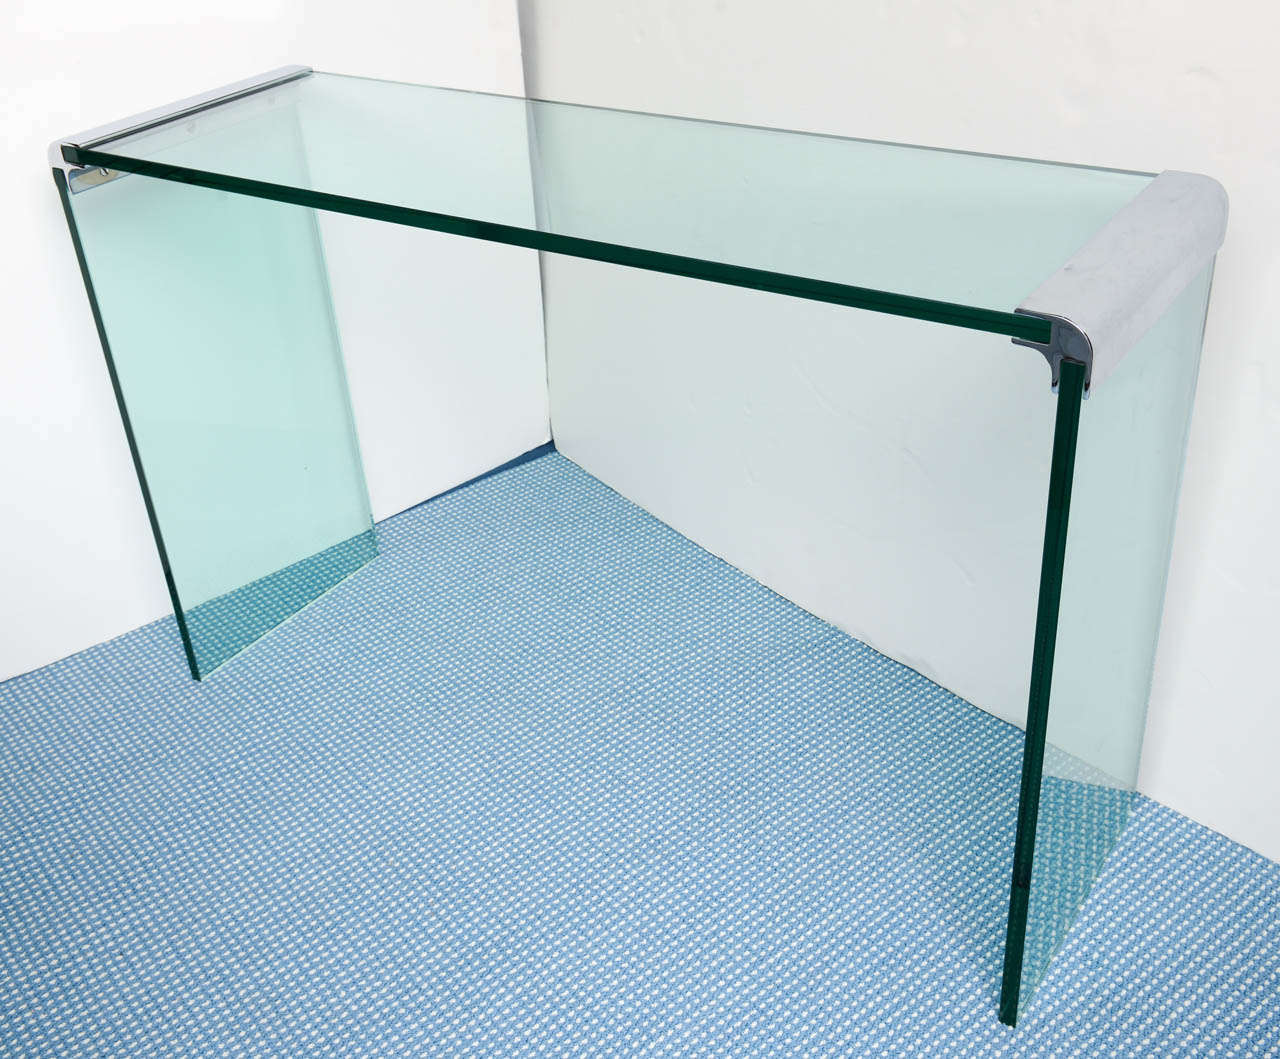 waterfall chrome and glass console table by pace collection at stdibs - waterfall chrome and glass console table by pace collection